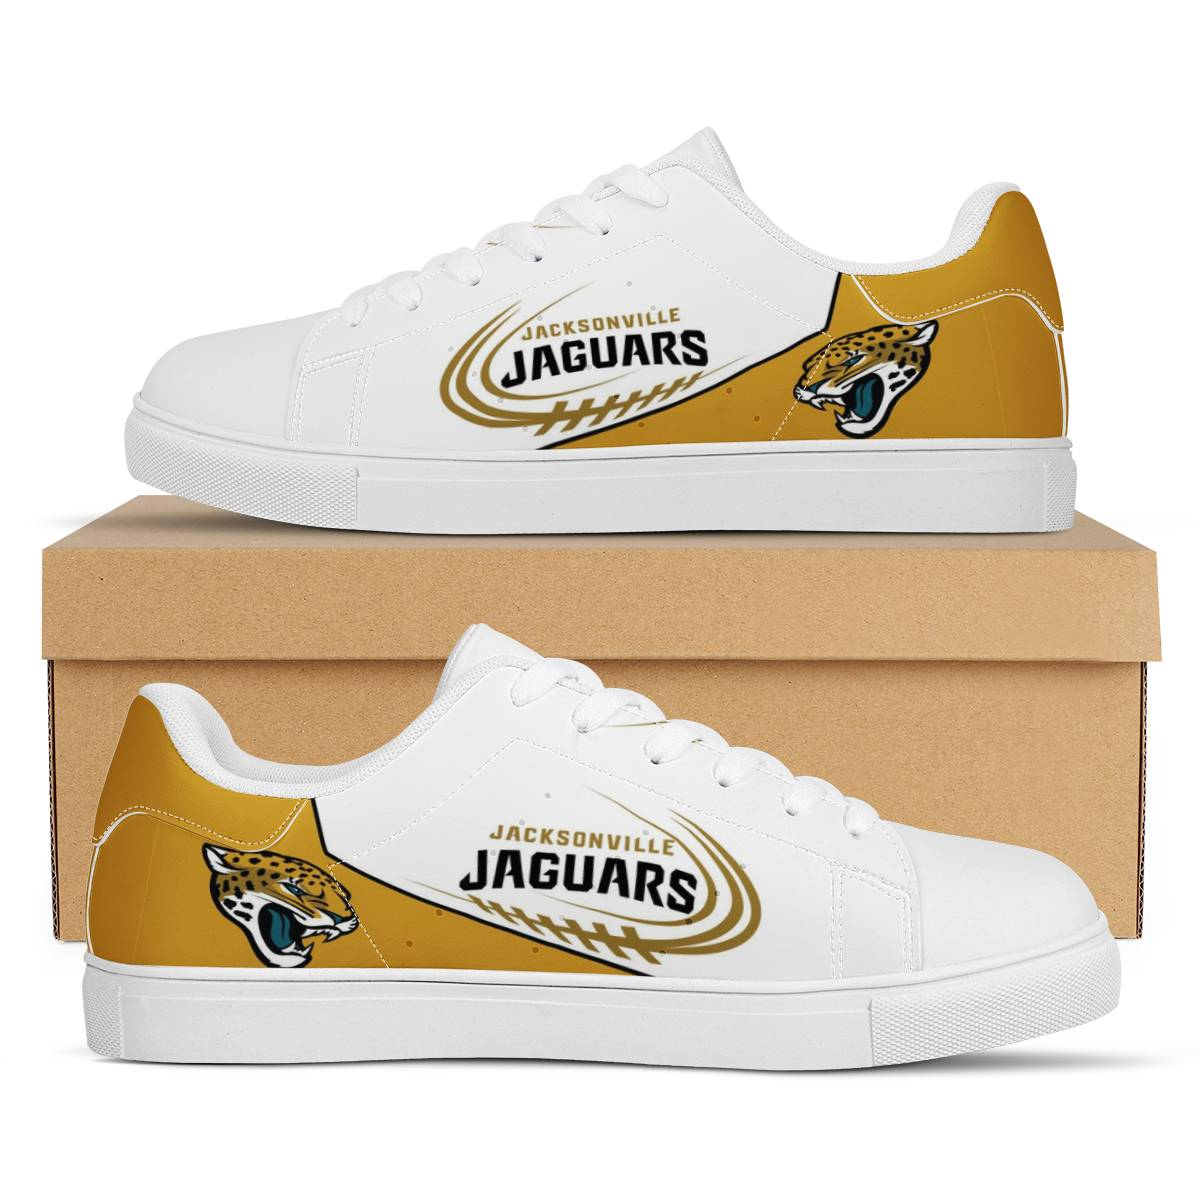 Men's Jacksonville Jaguars Low Top Leather Sneakers 003